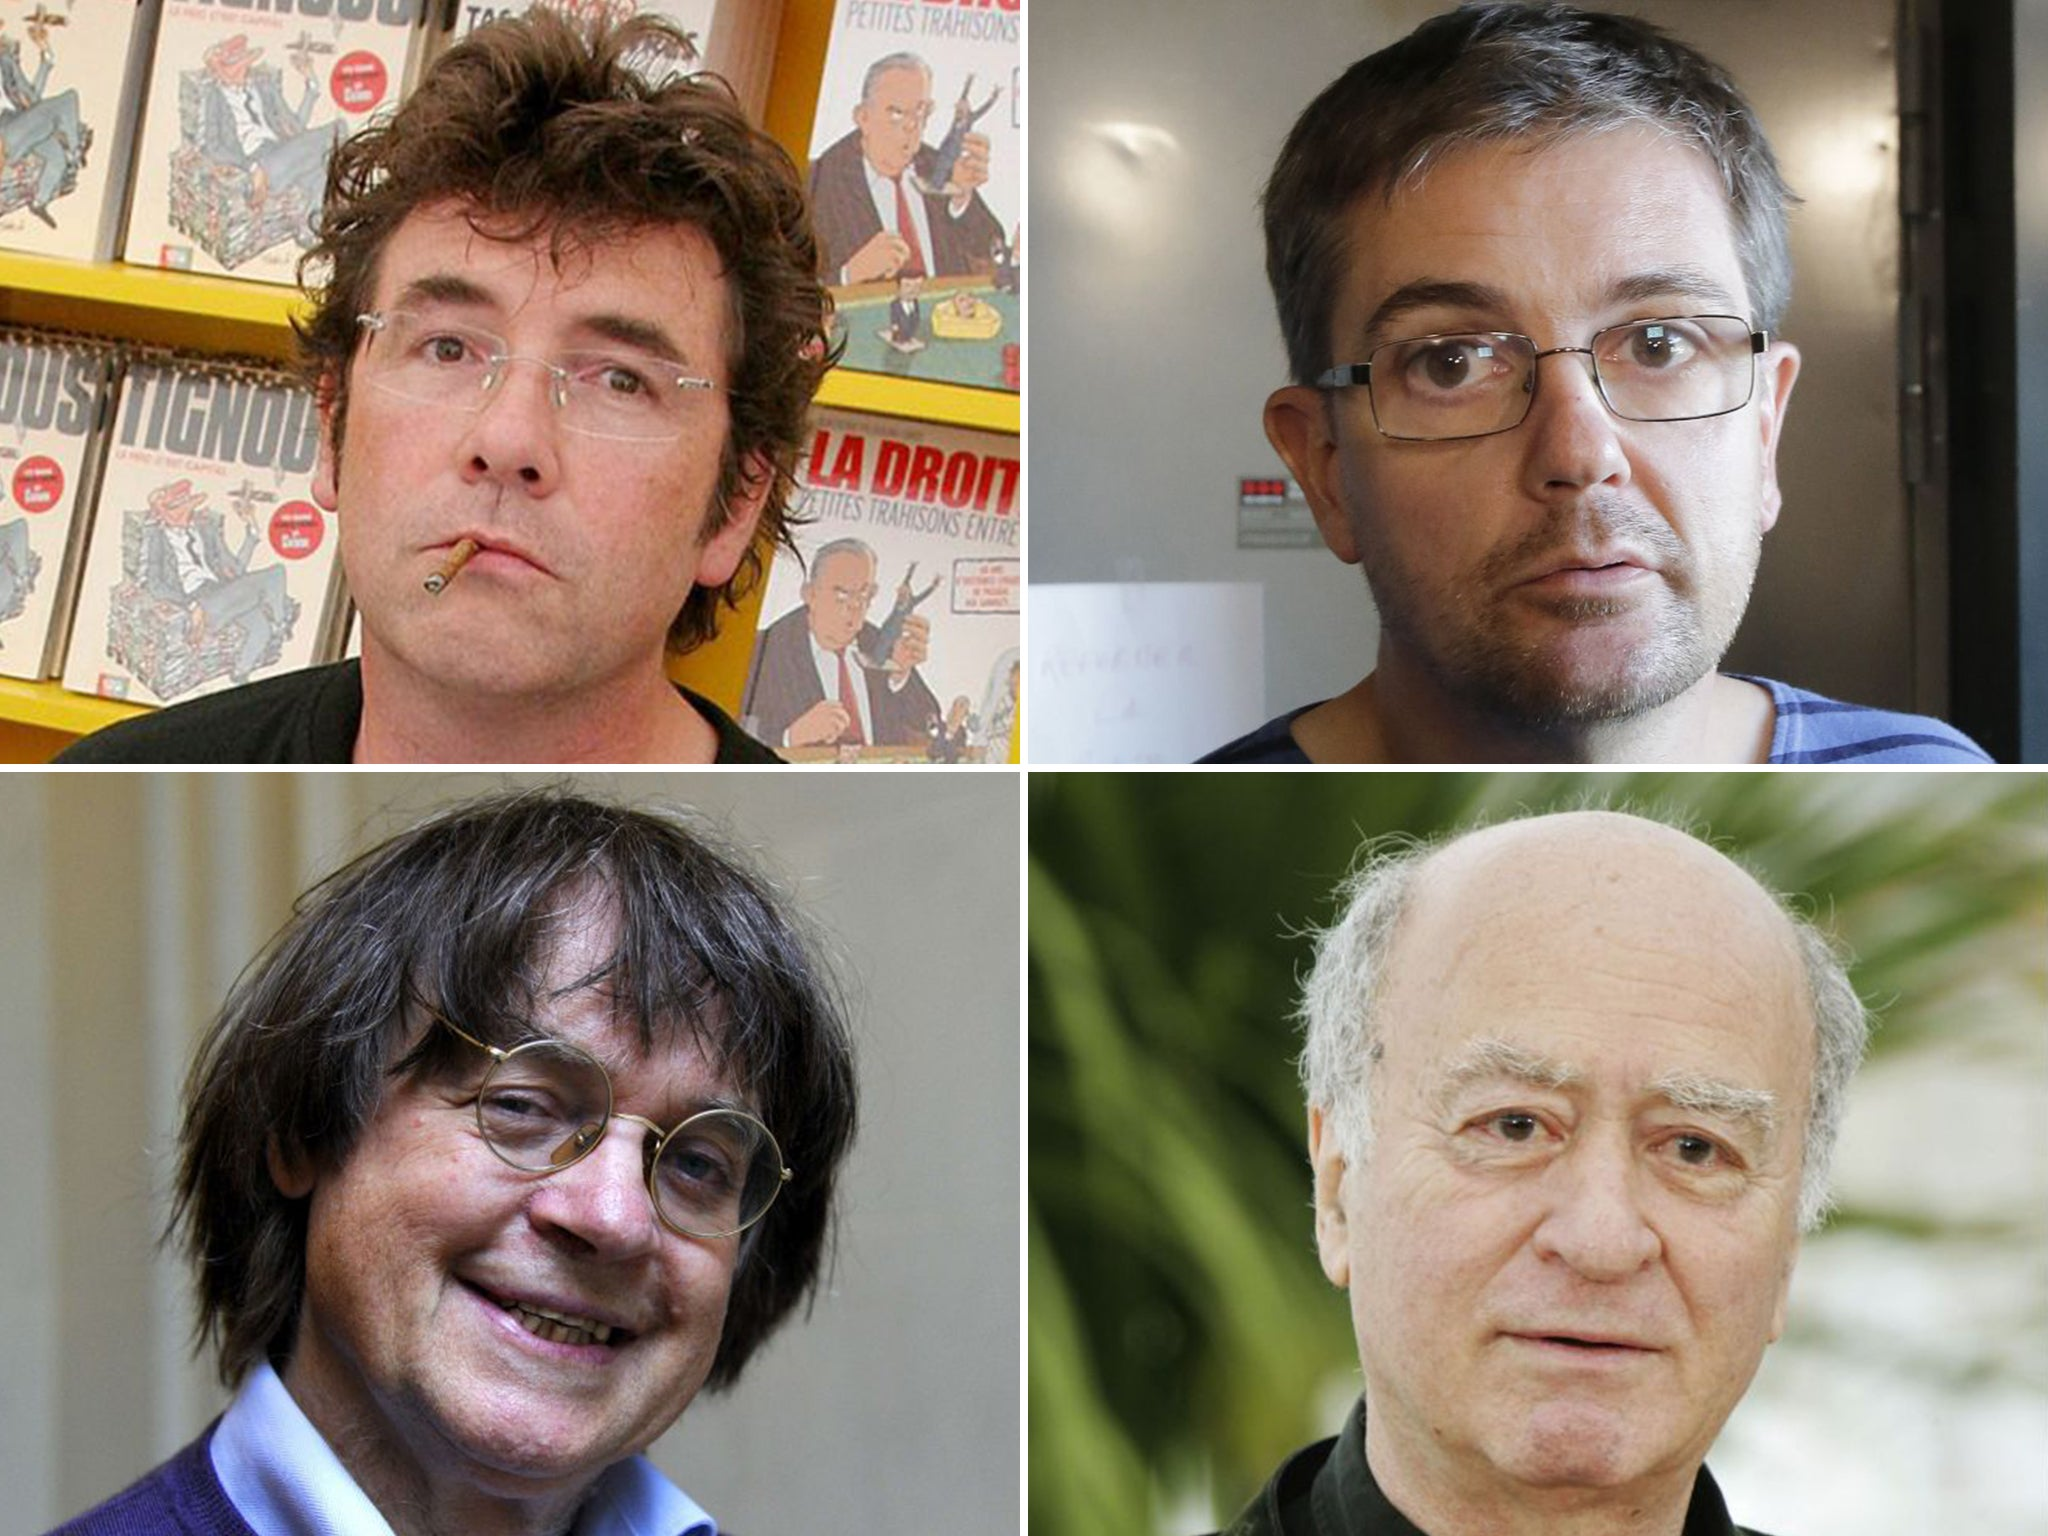 Charlie Hebdo Attack All 12 Victims Are Named The Independent The Independent